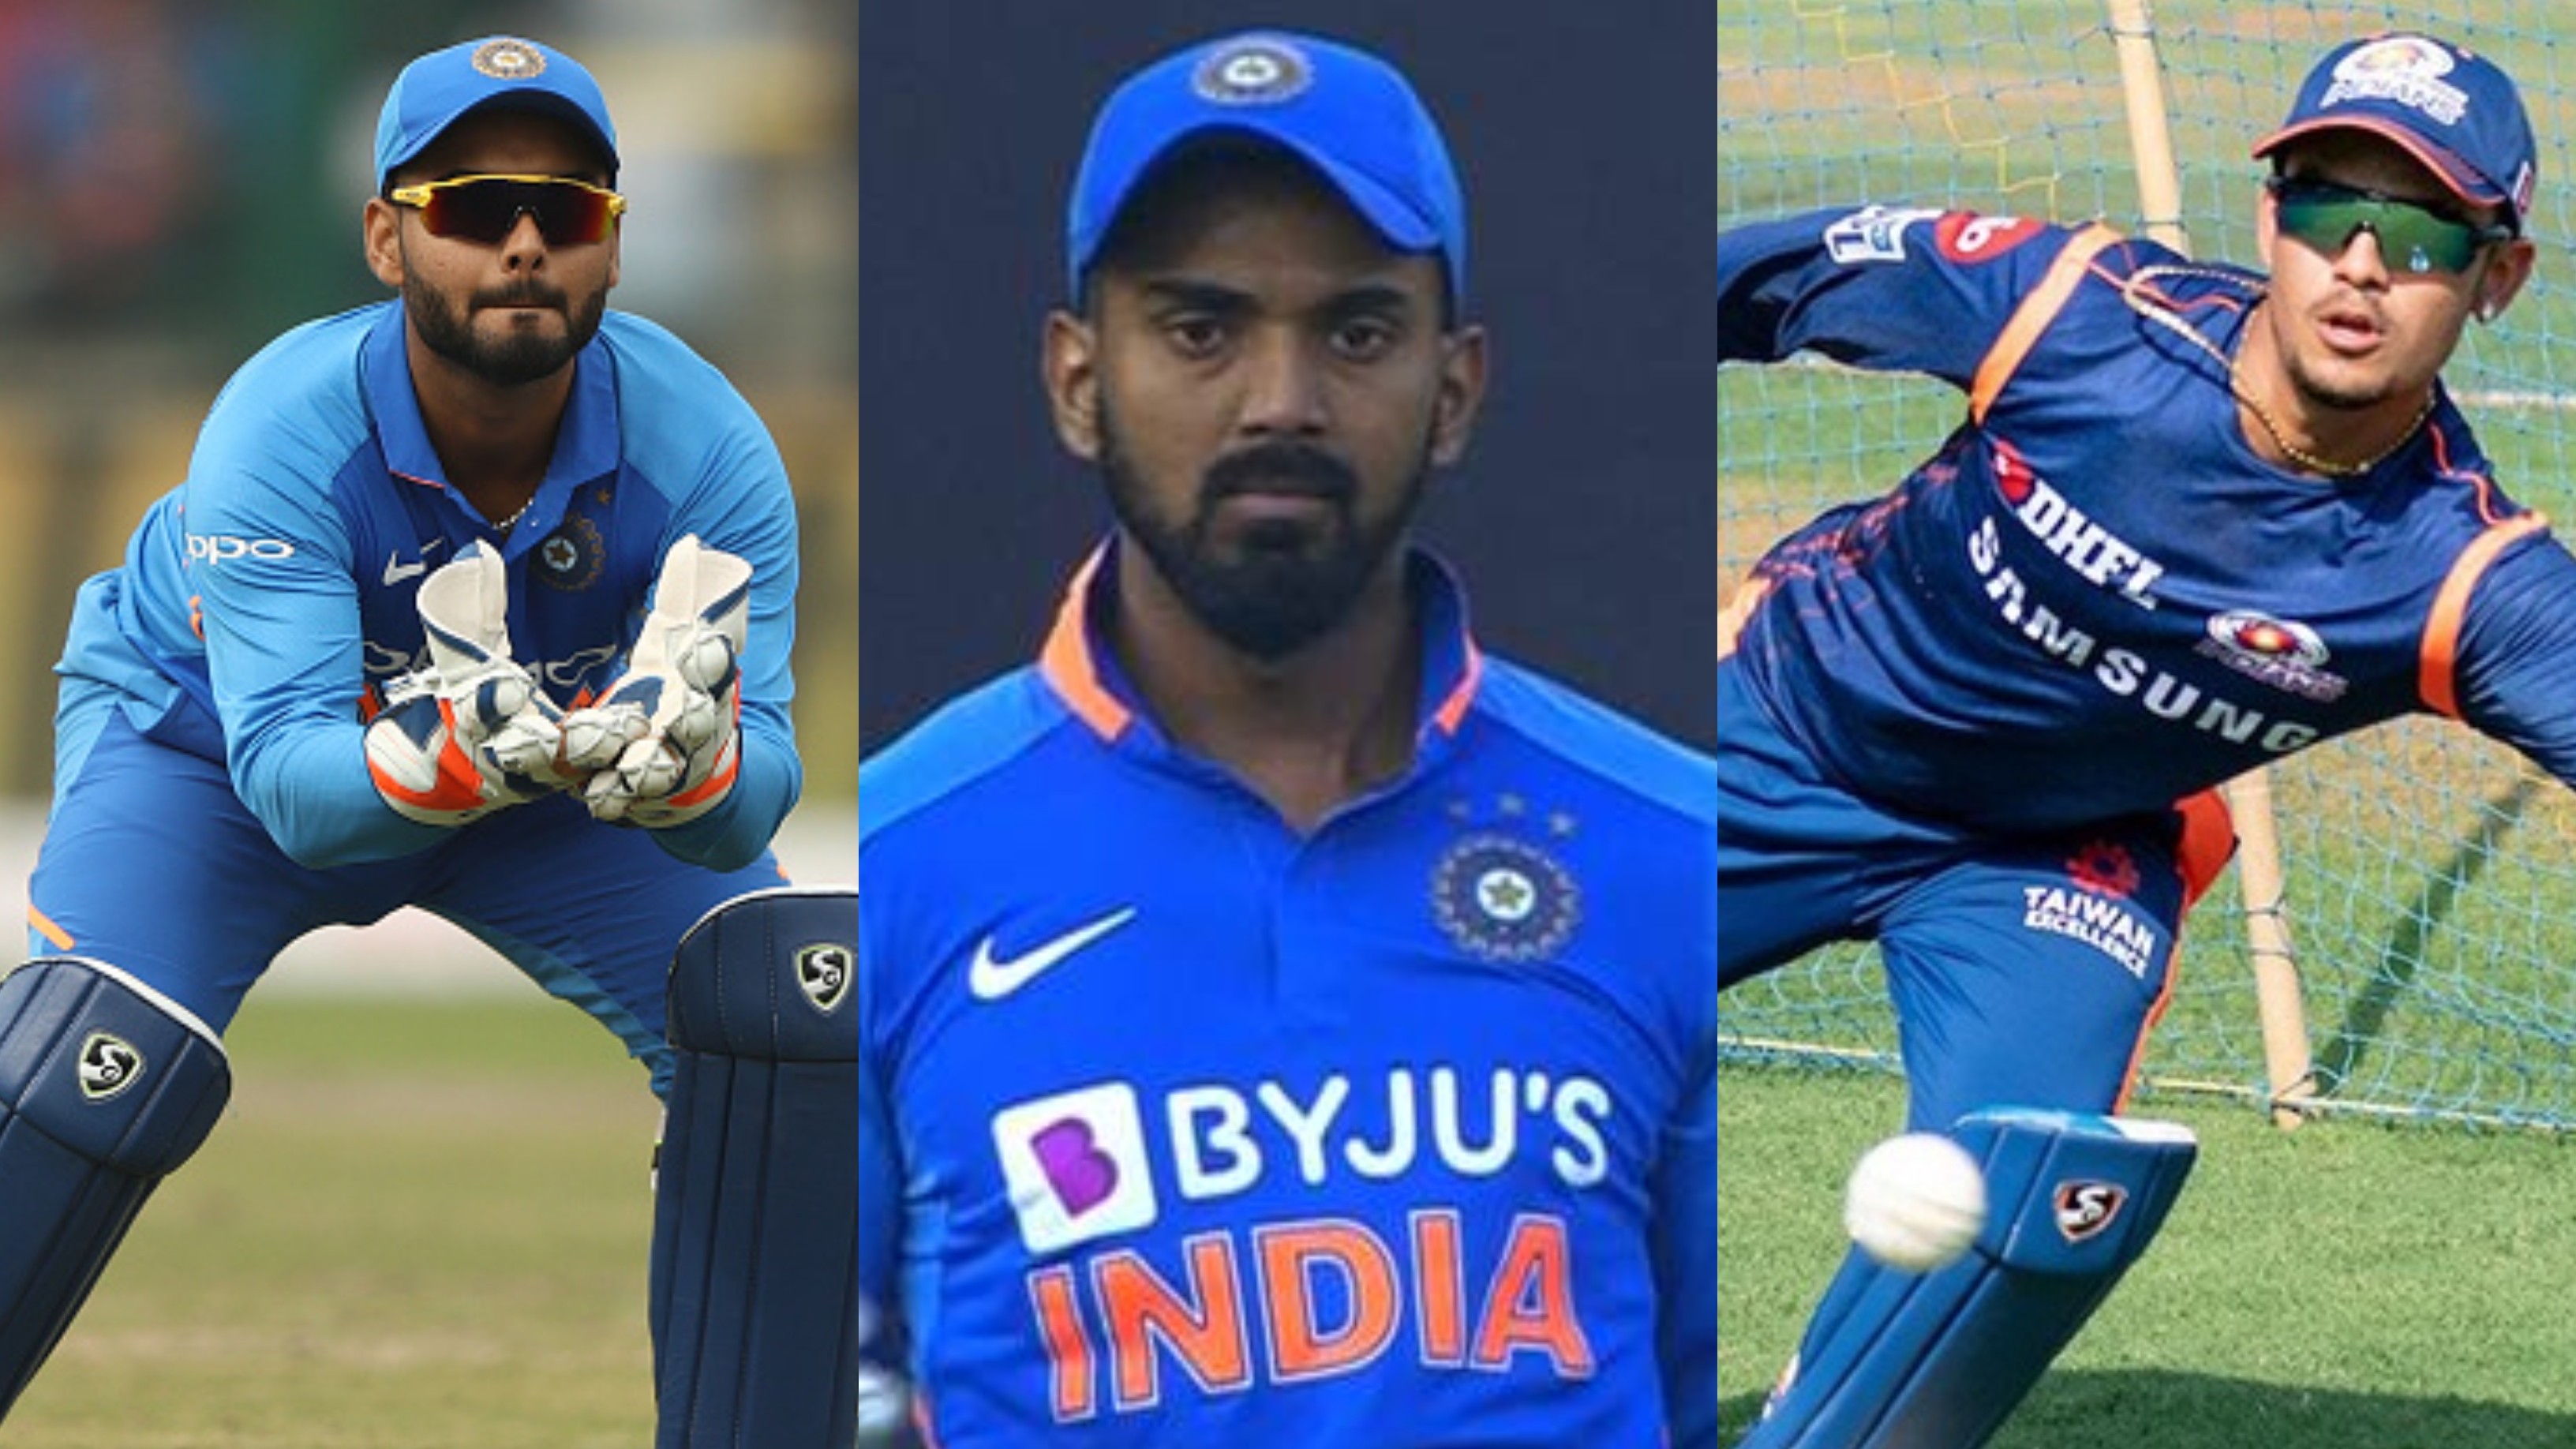 IND v ENG 2021: Who'll keep for India in T20I series- Pant, Rahul, or Ishan? Aakash Chopra answers